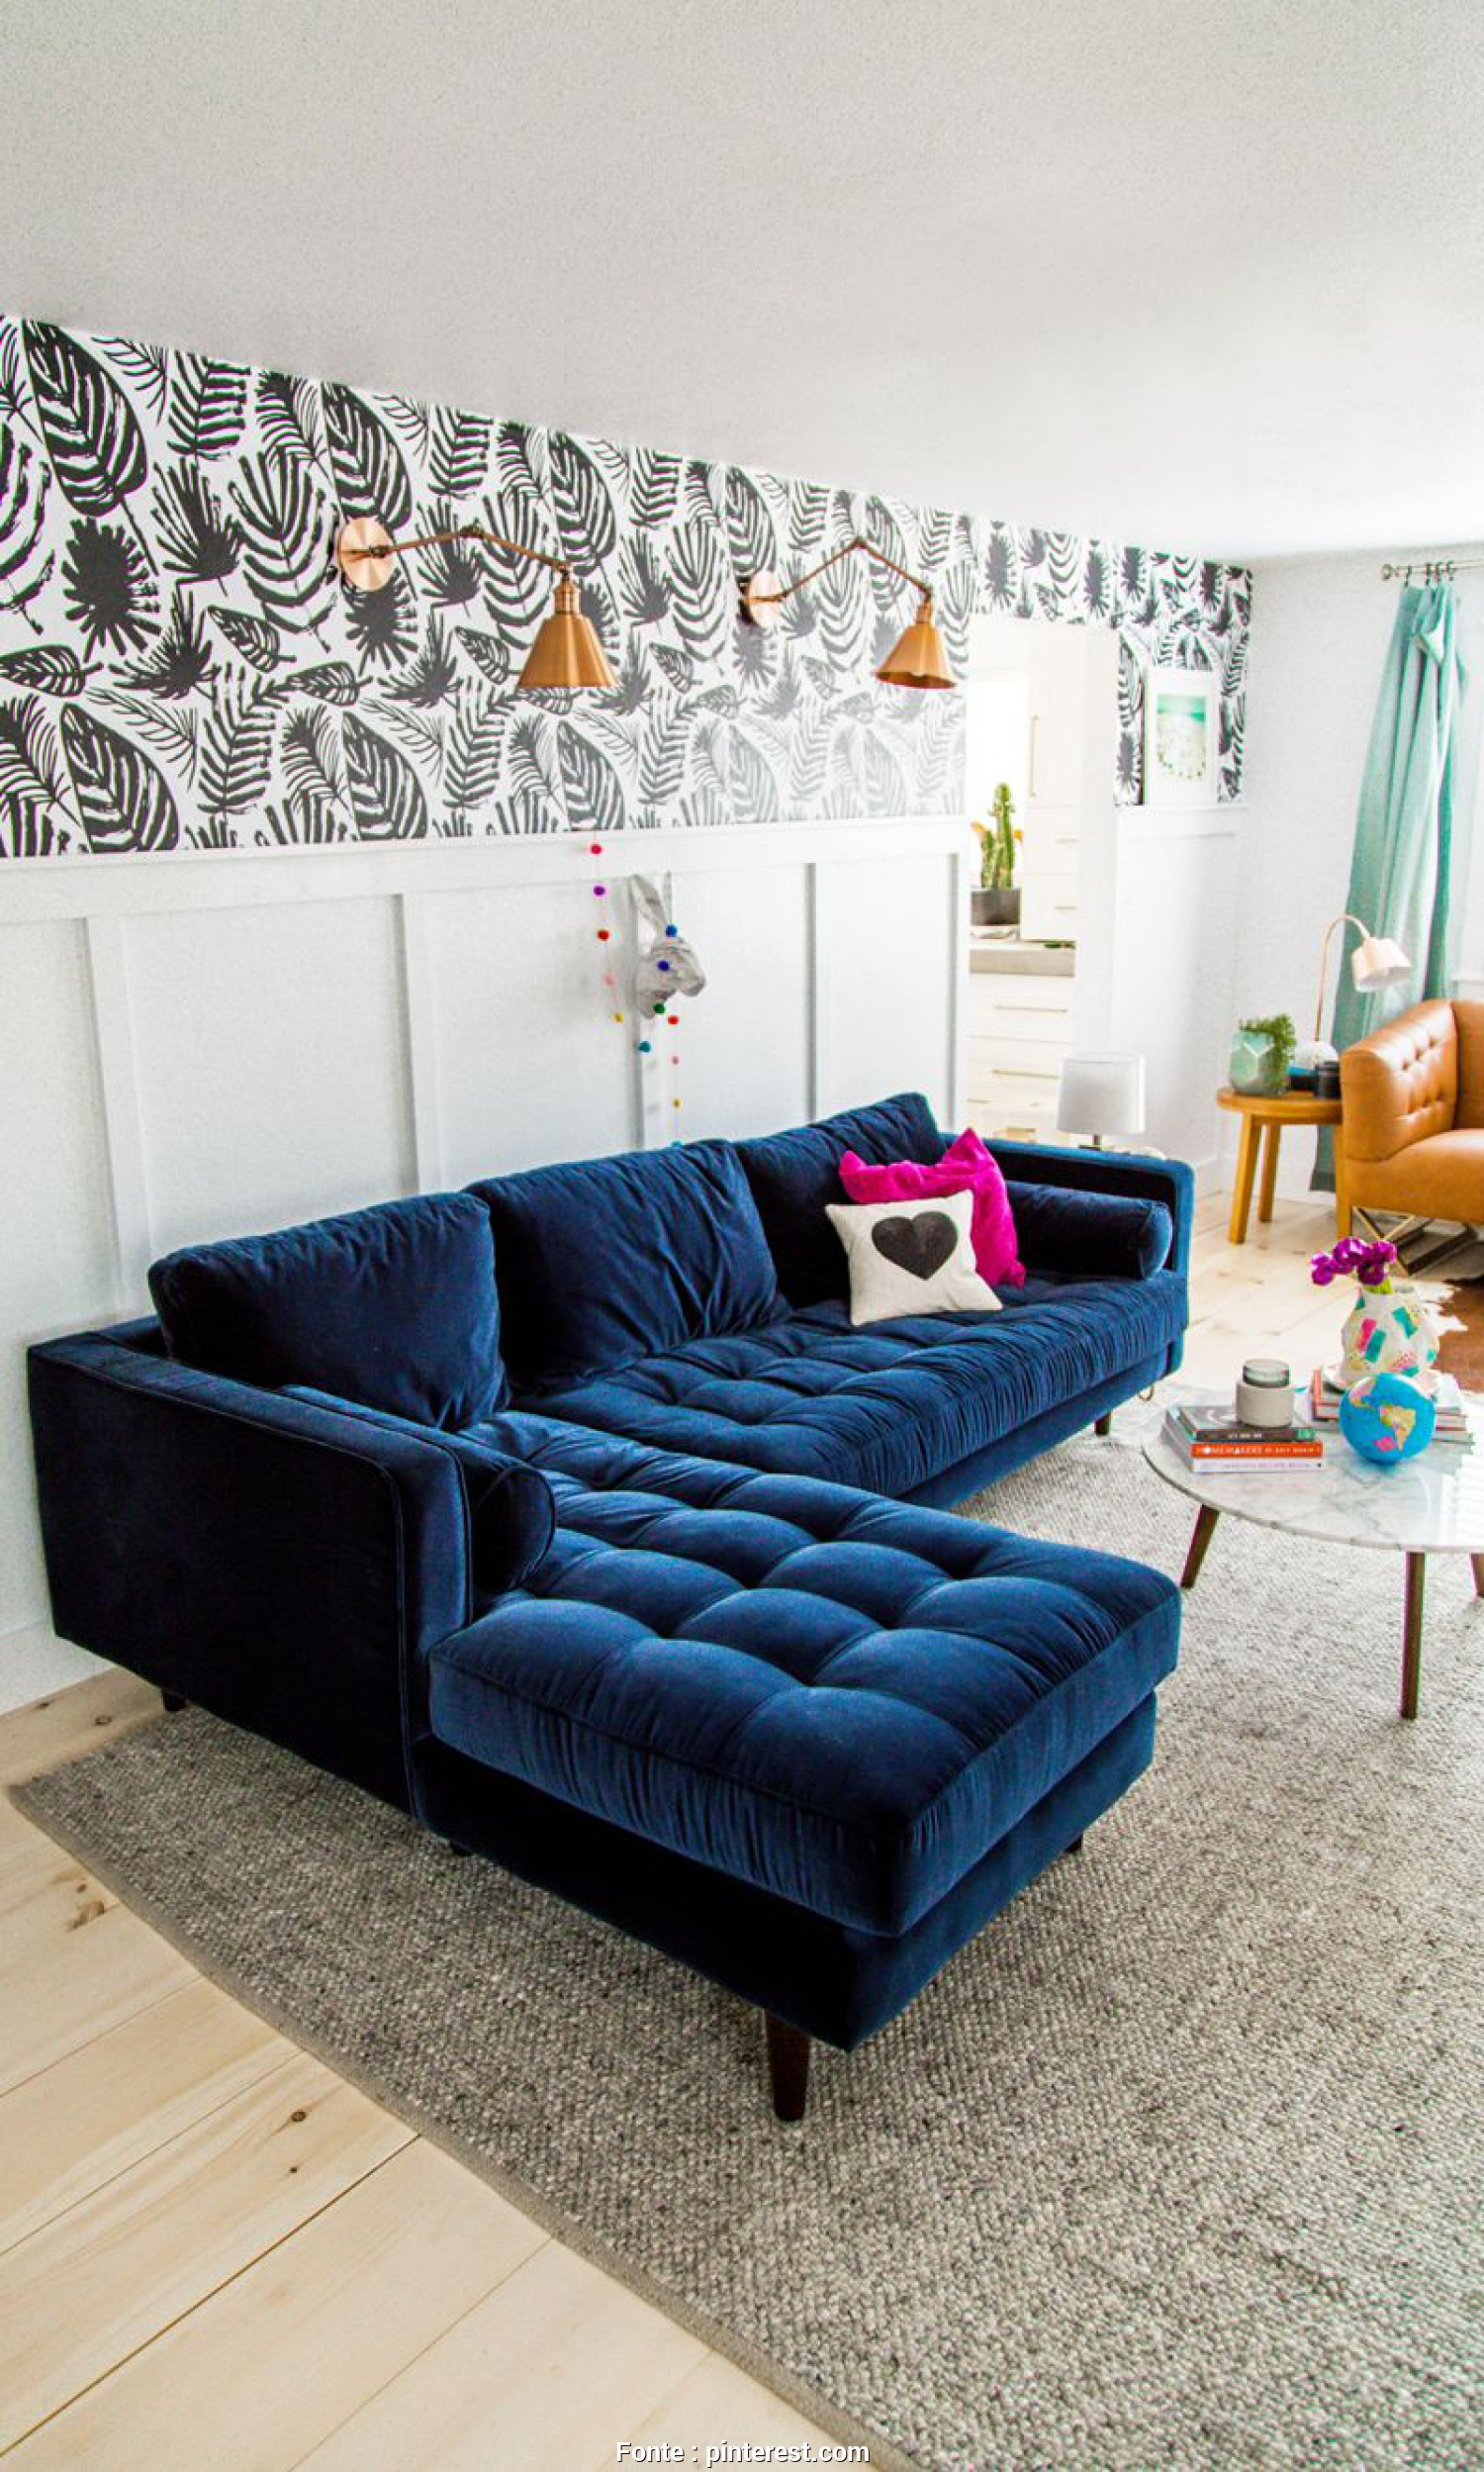 Divano Vintage Subito.It, Completare Our Living Room Reveal, Celebrate, Pinterest, Living Room, Room